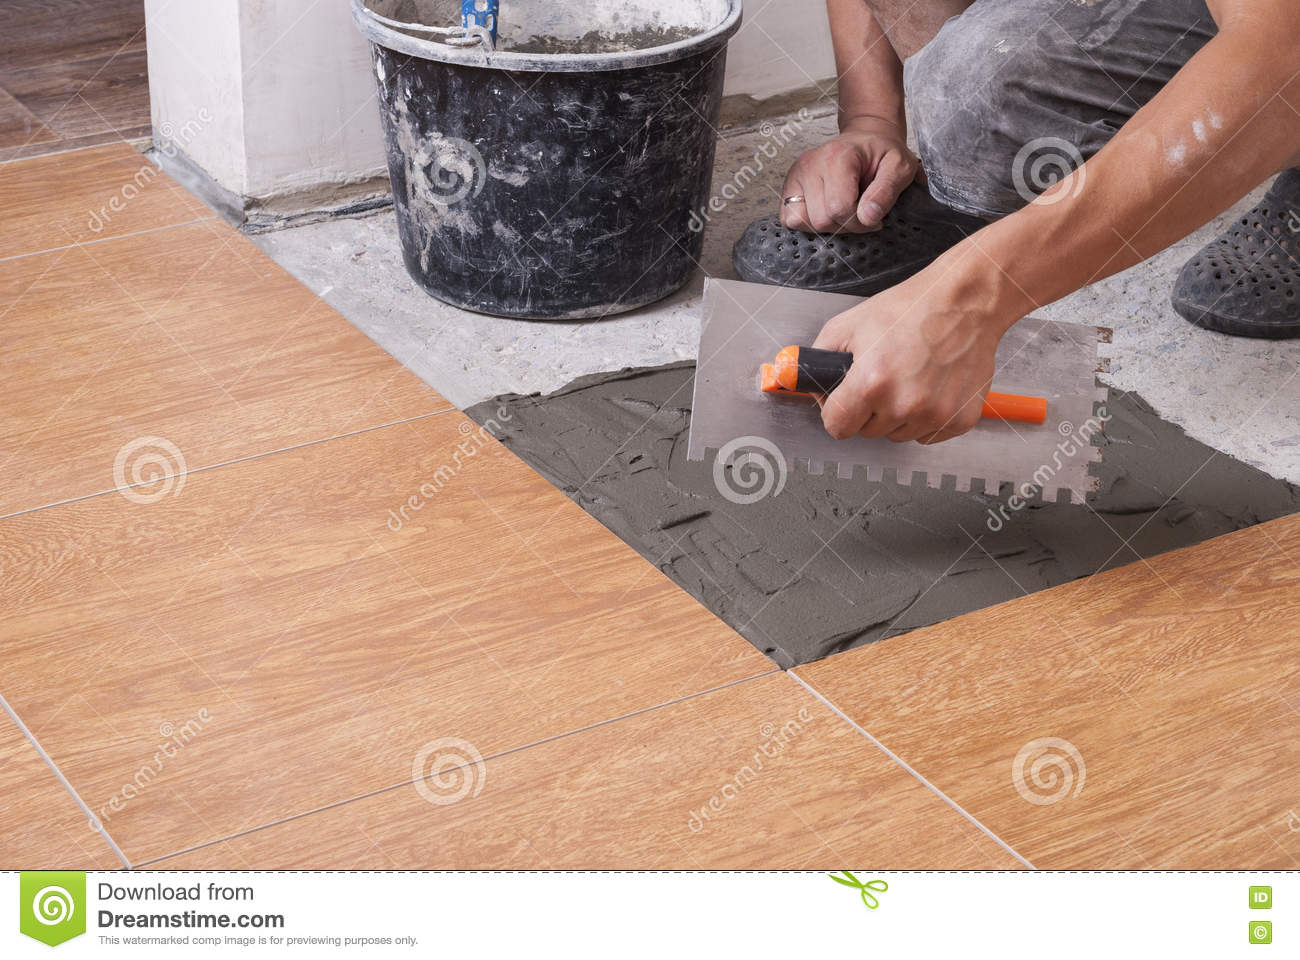 Laying Tiles On The Floor Stock Image Image Of Installation 77222197